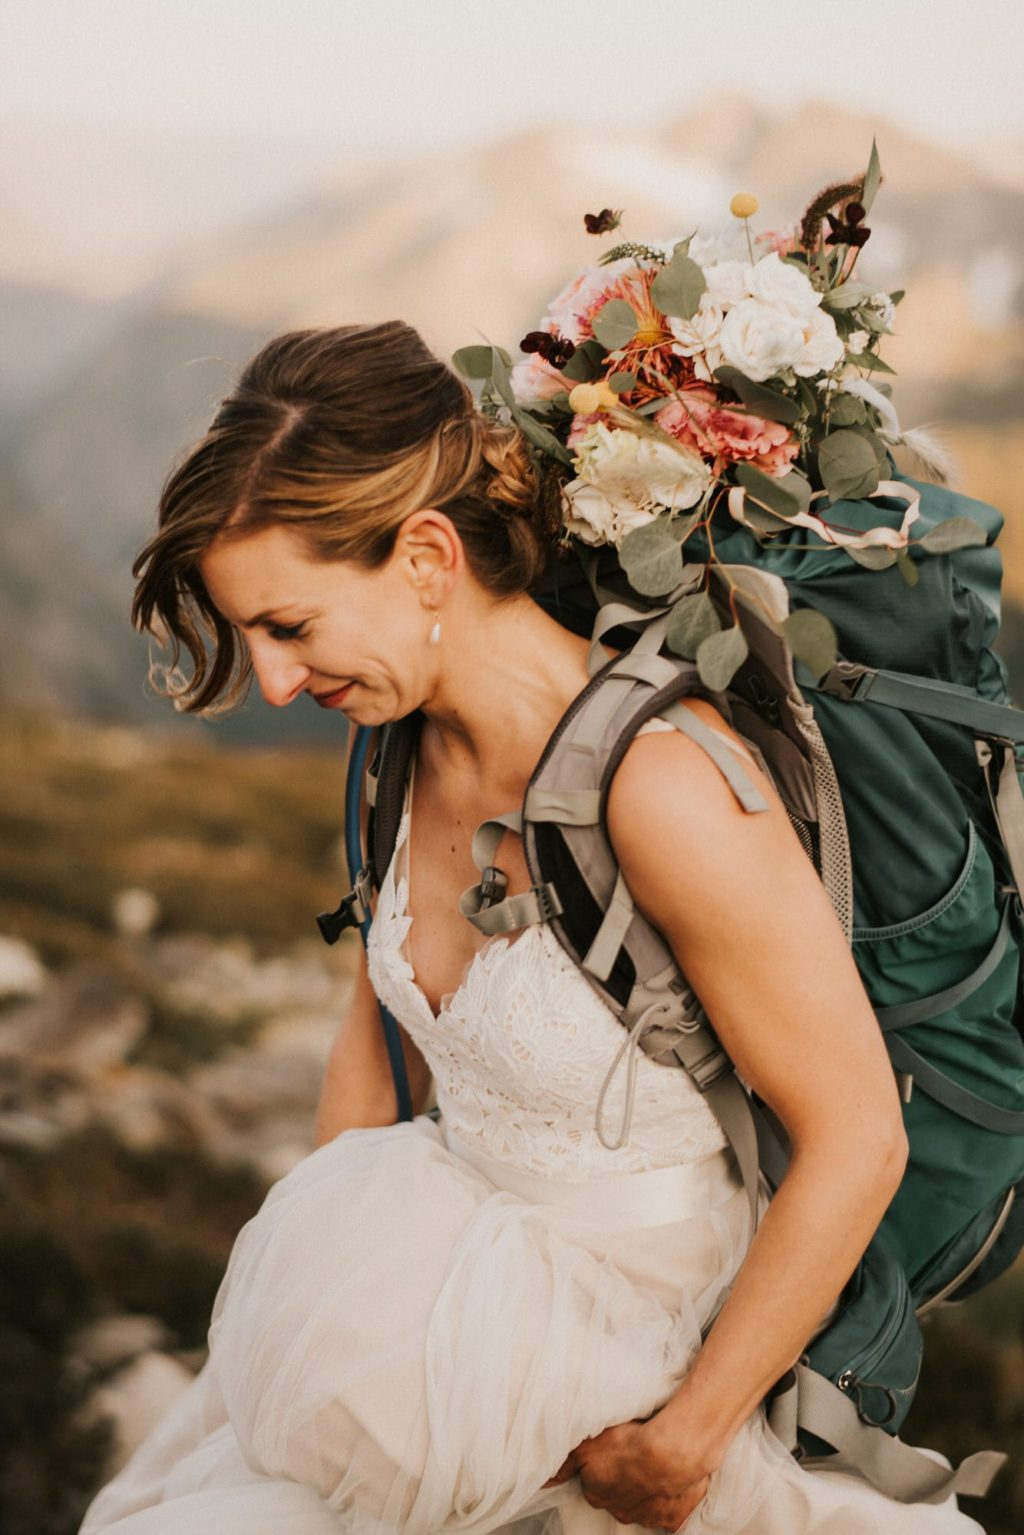 Bride with backpack going hiking in the mountains